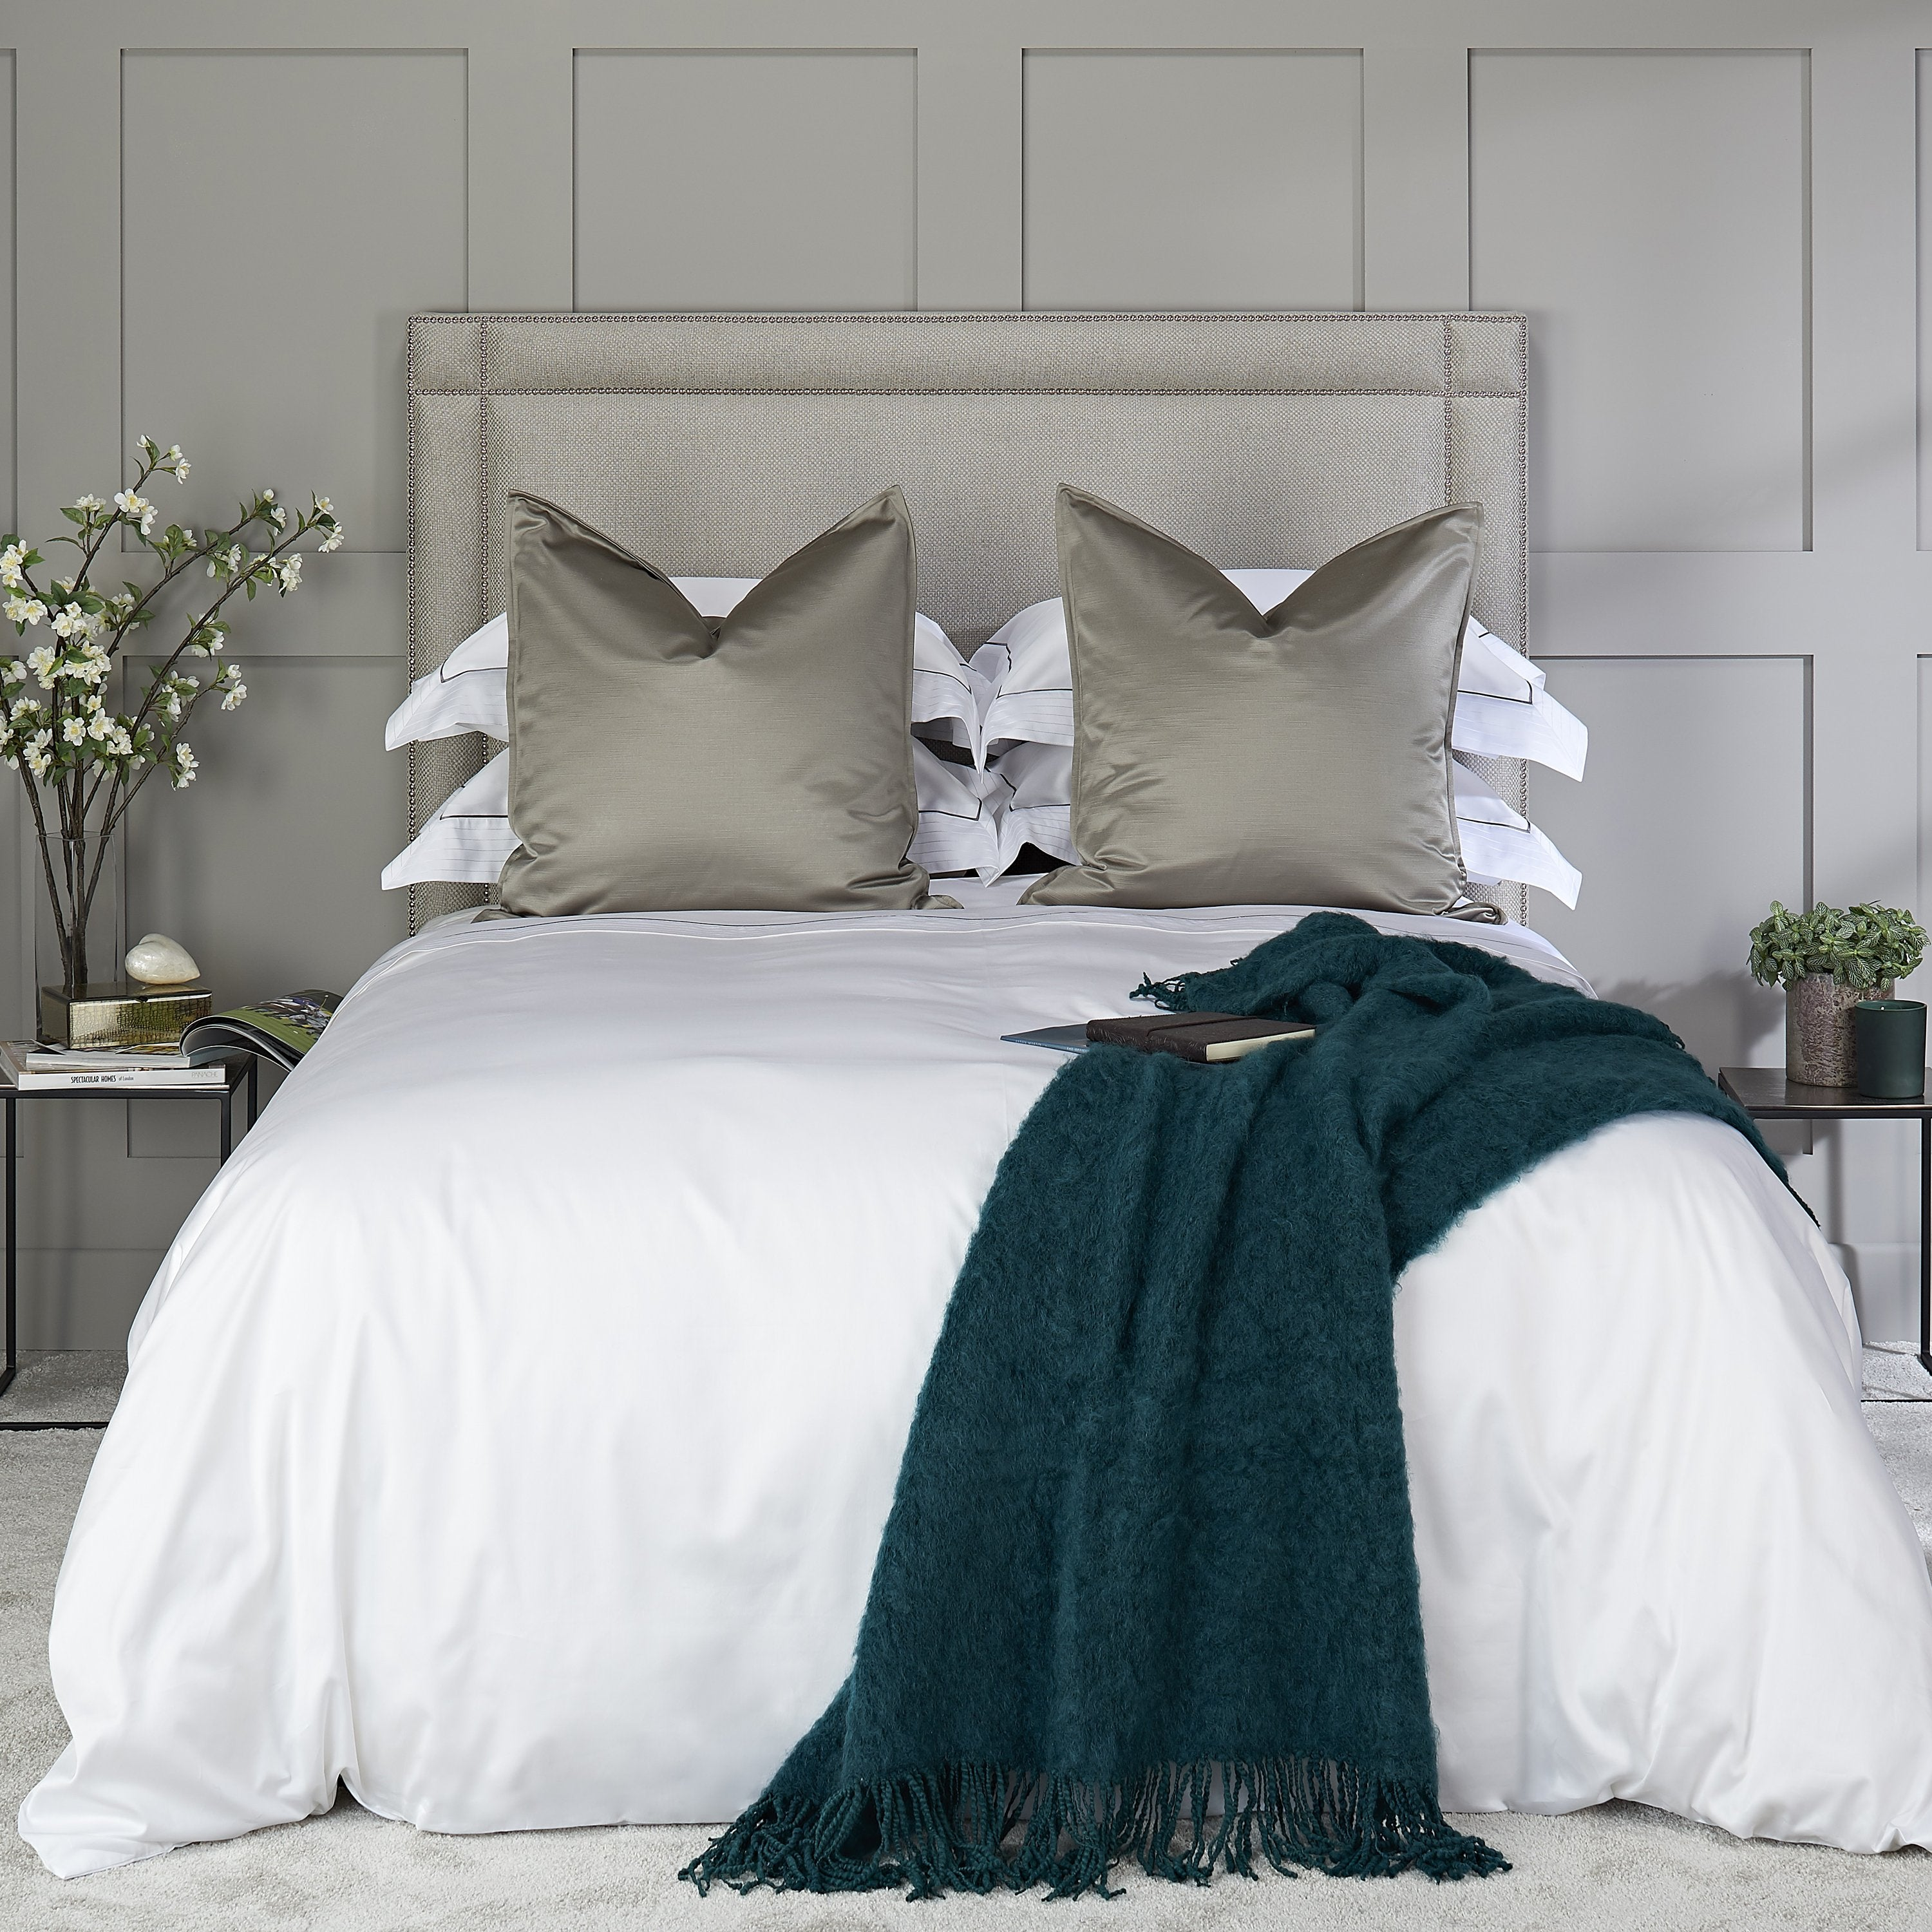 Heirlooms luxurious Sandringham cotton sateen white bedroom sheets set with a contrast border whose subtle self colour woven stitch adds shine to your lines